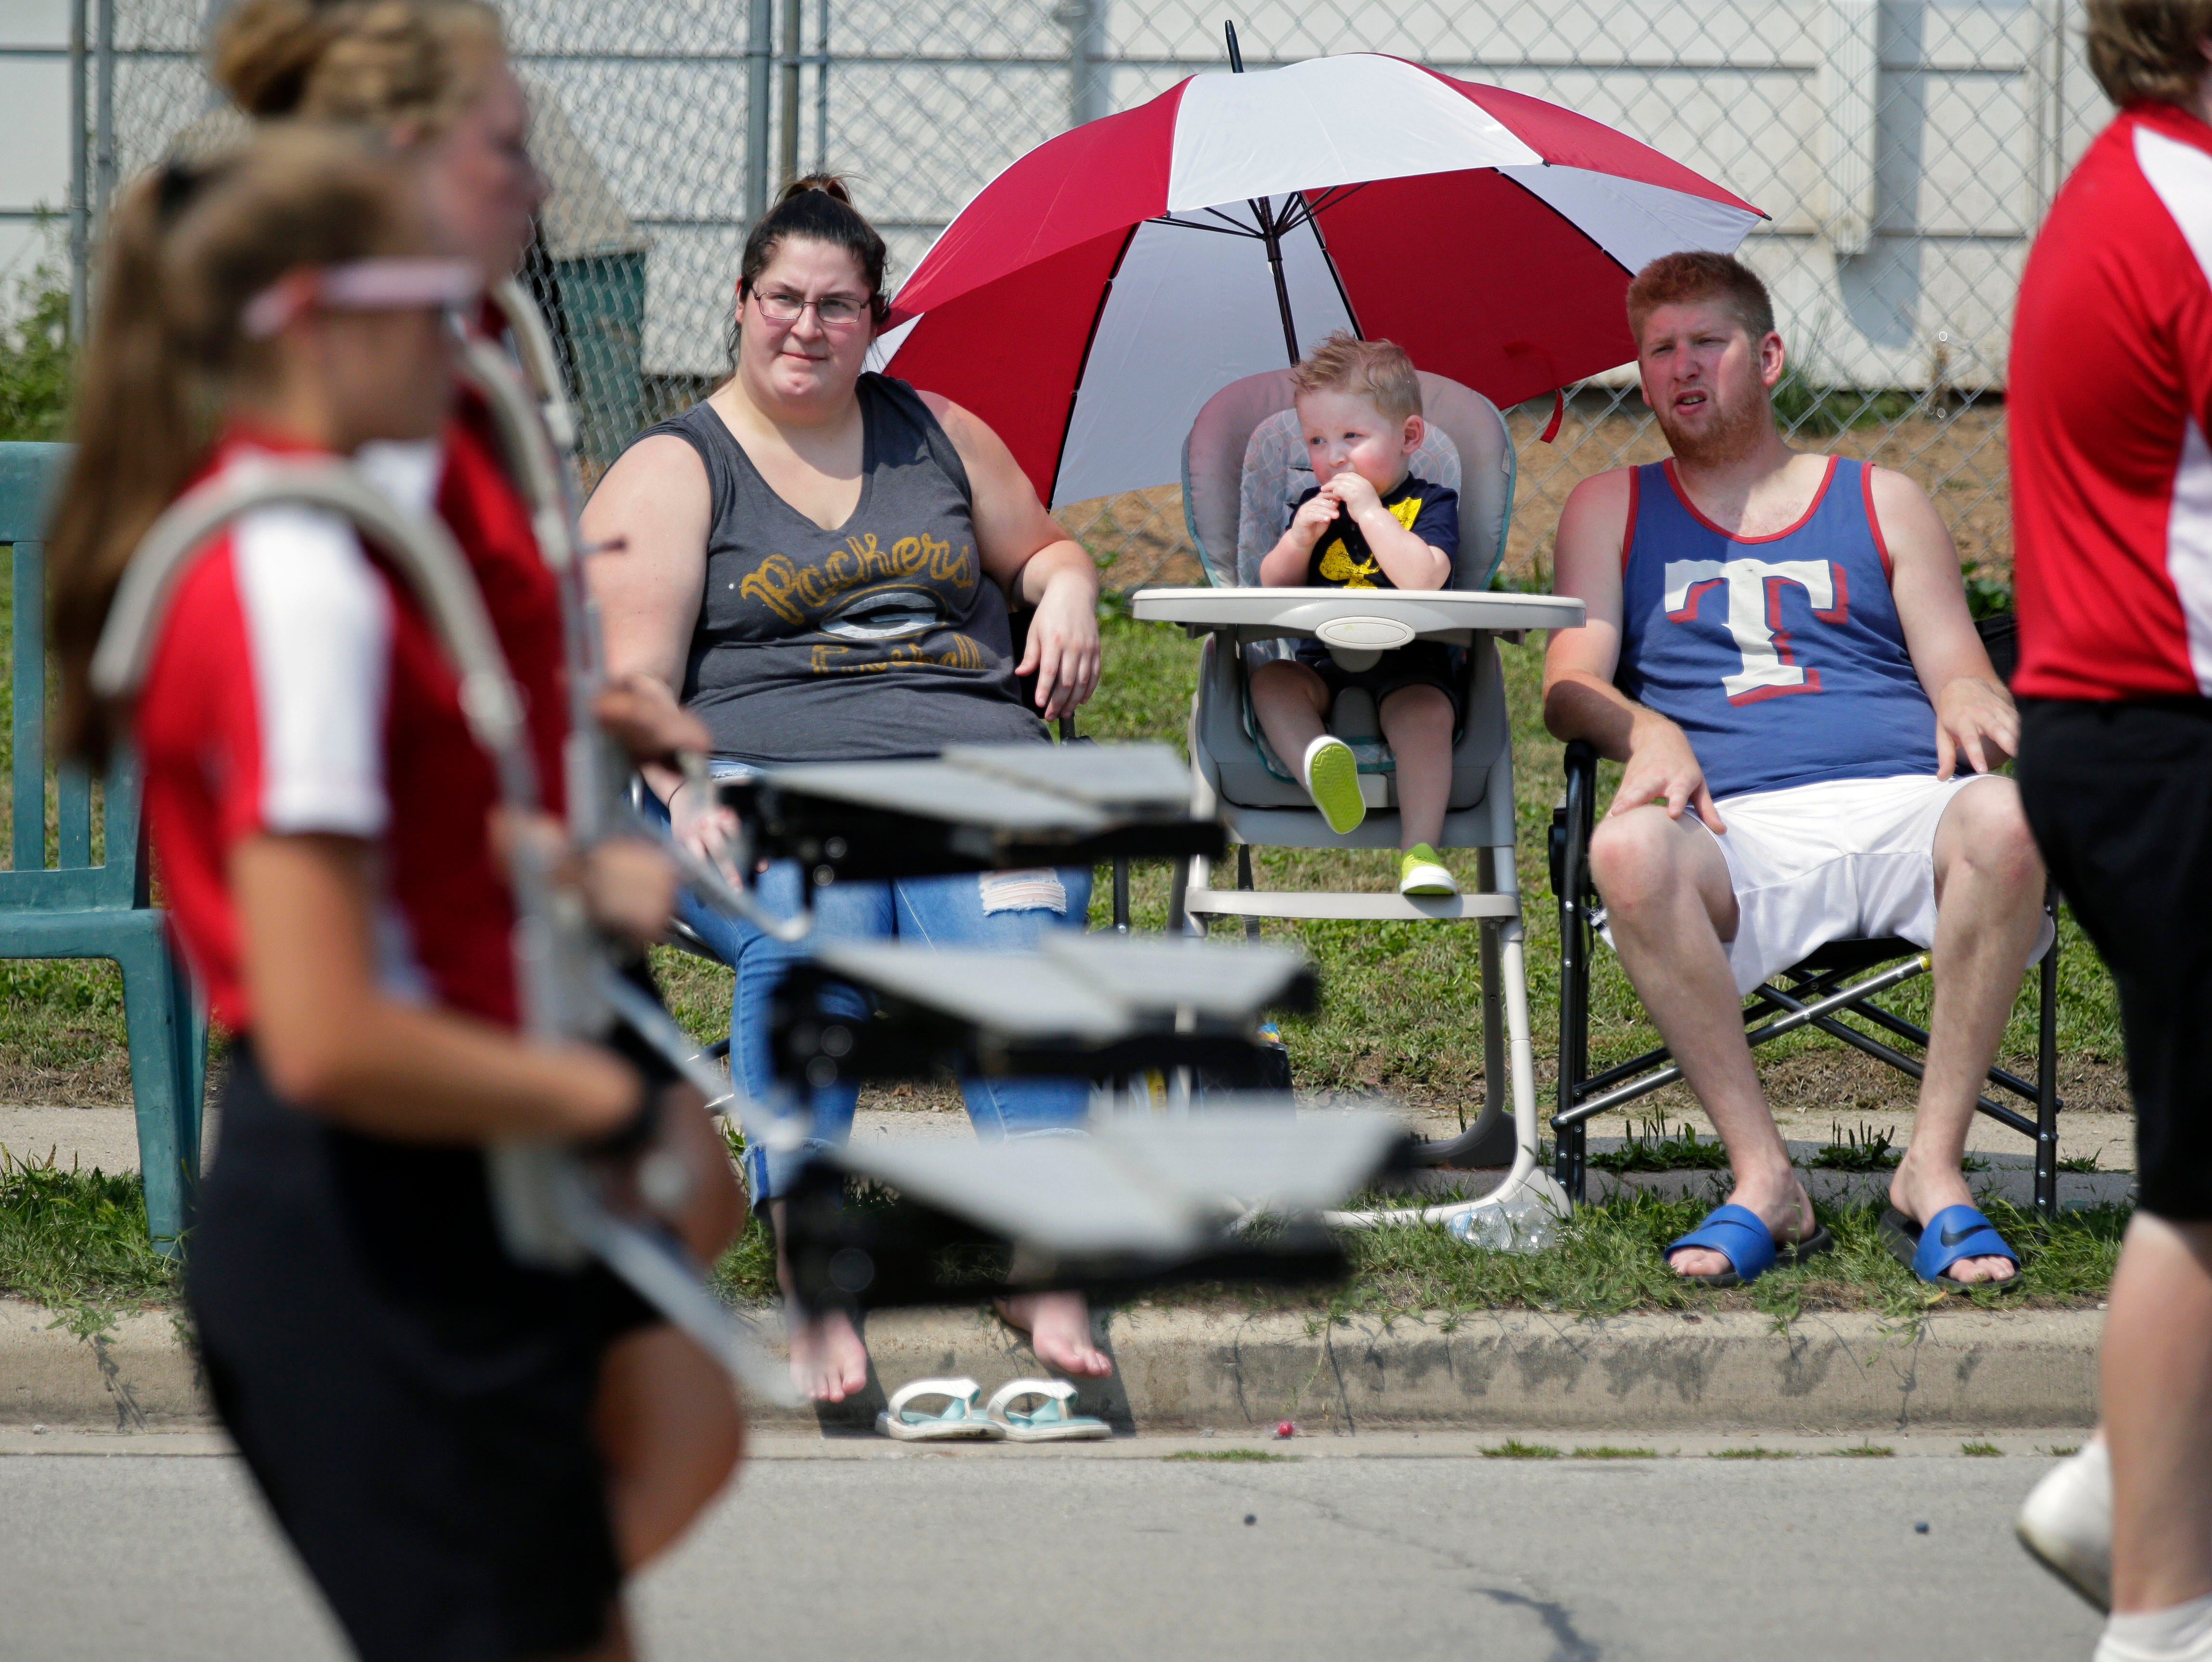 Harrison Miramontes has the best seat in his high chair with an umbrella as he and his parents Vanessa and Harley watch the Hamburger Parade during the 30th annual Burger Fest Saturday, August 11, 2018, in Seymour, Wis.